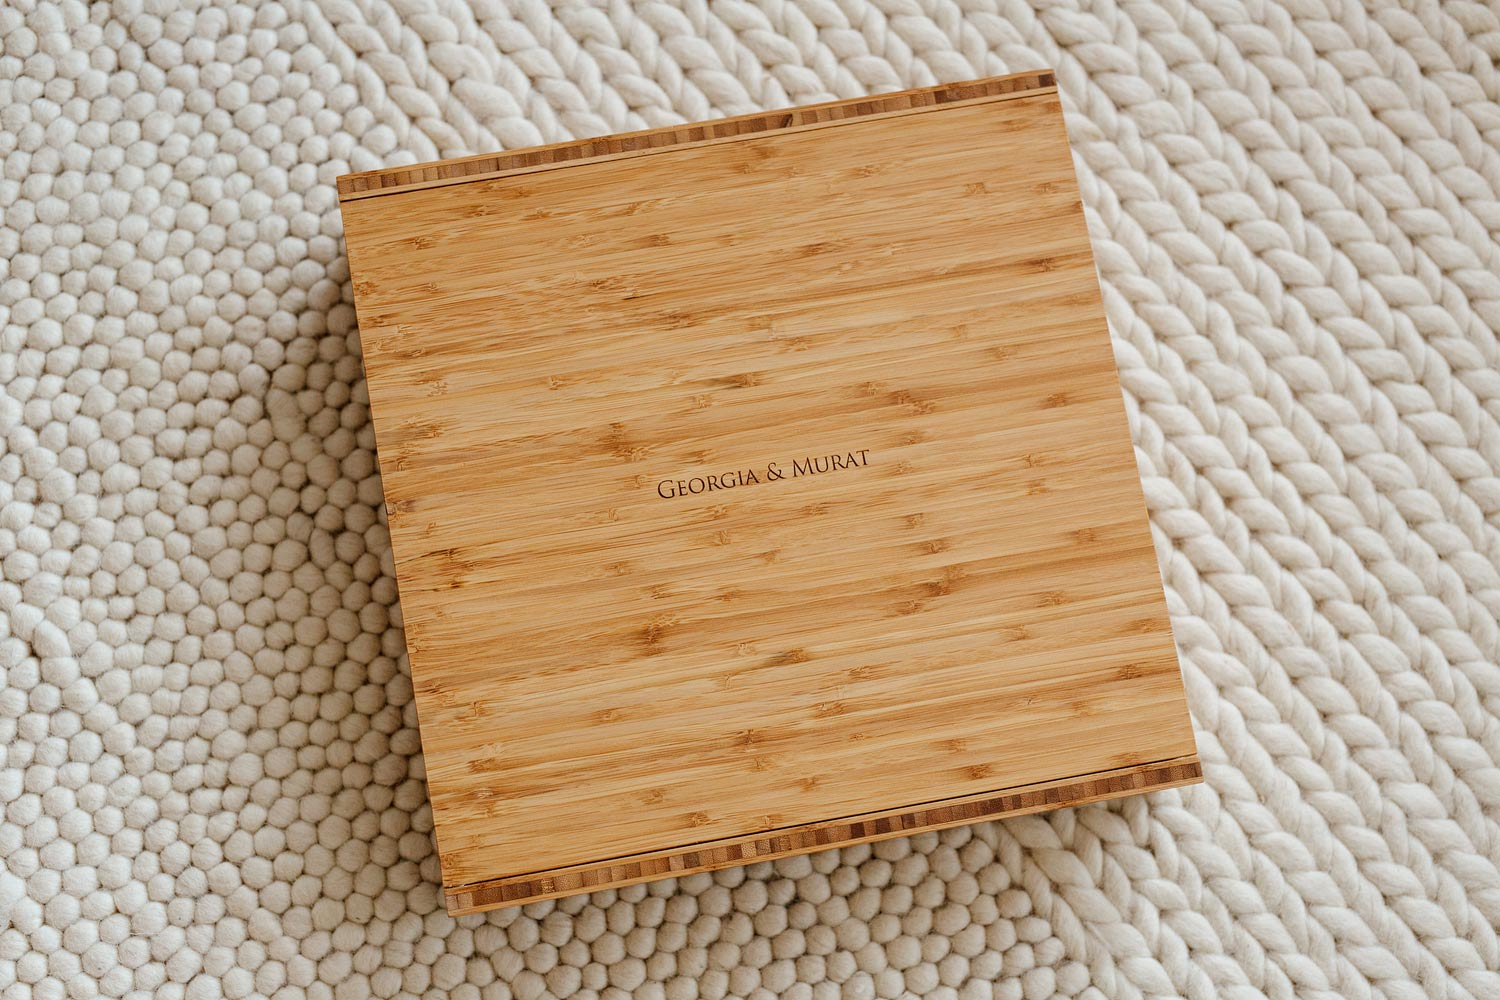 A beautiful bamboo box from Folio Albums